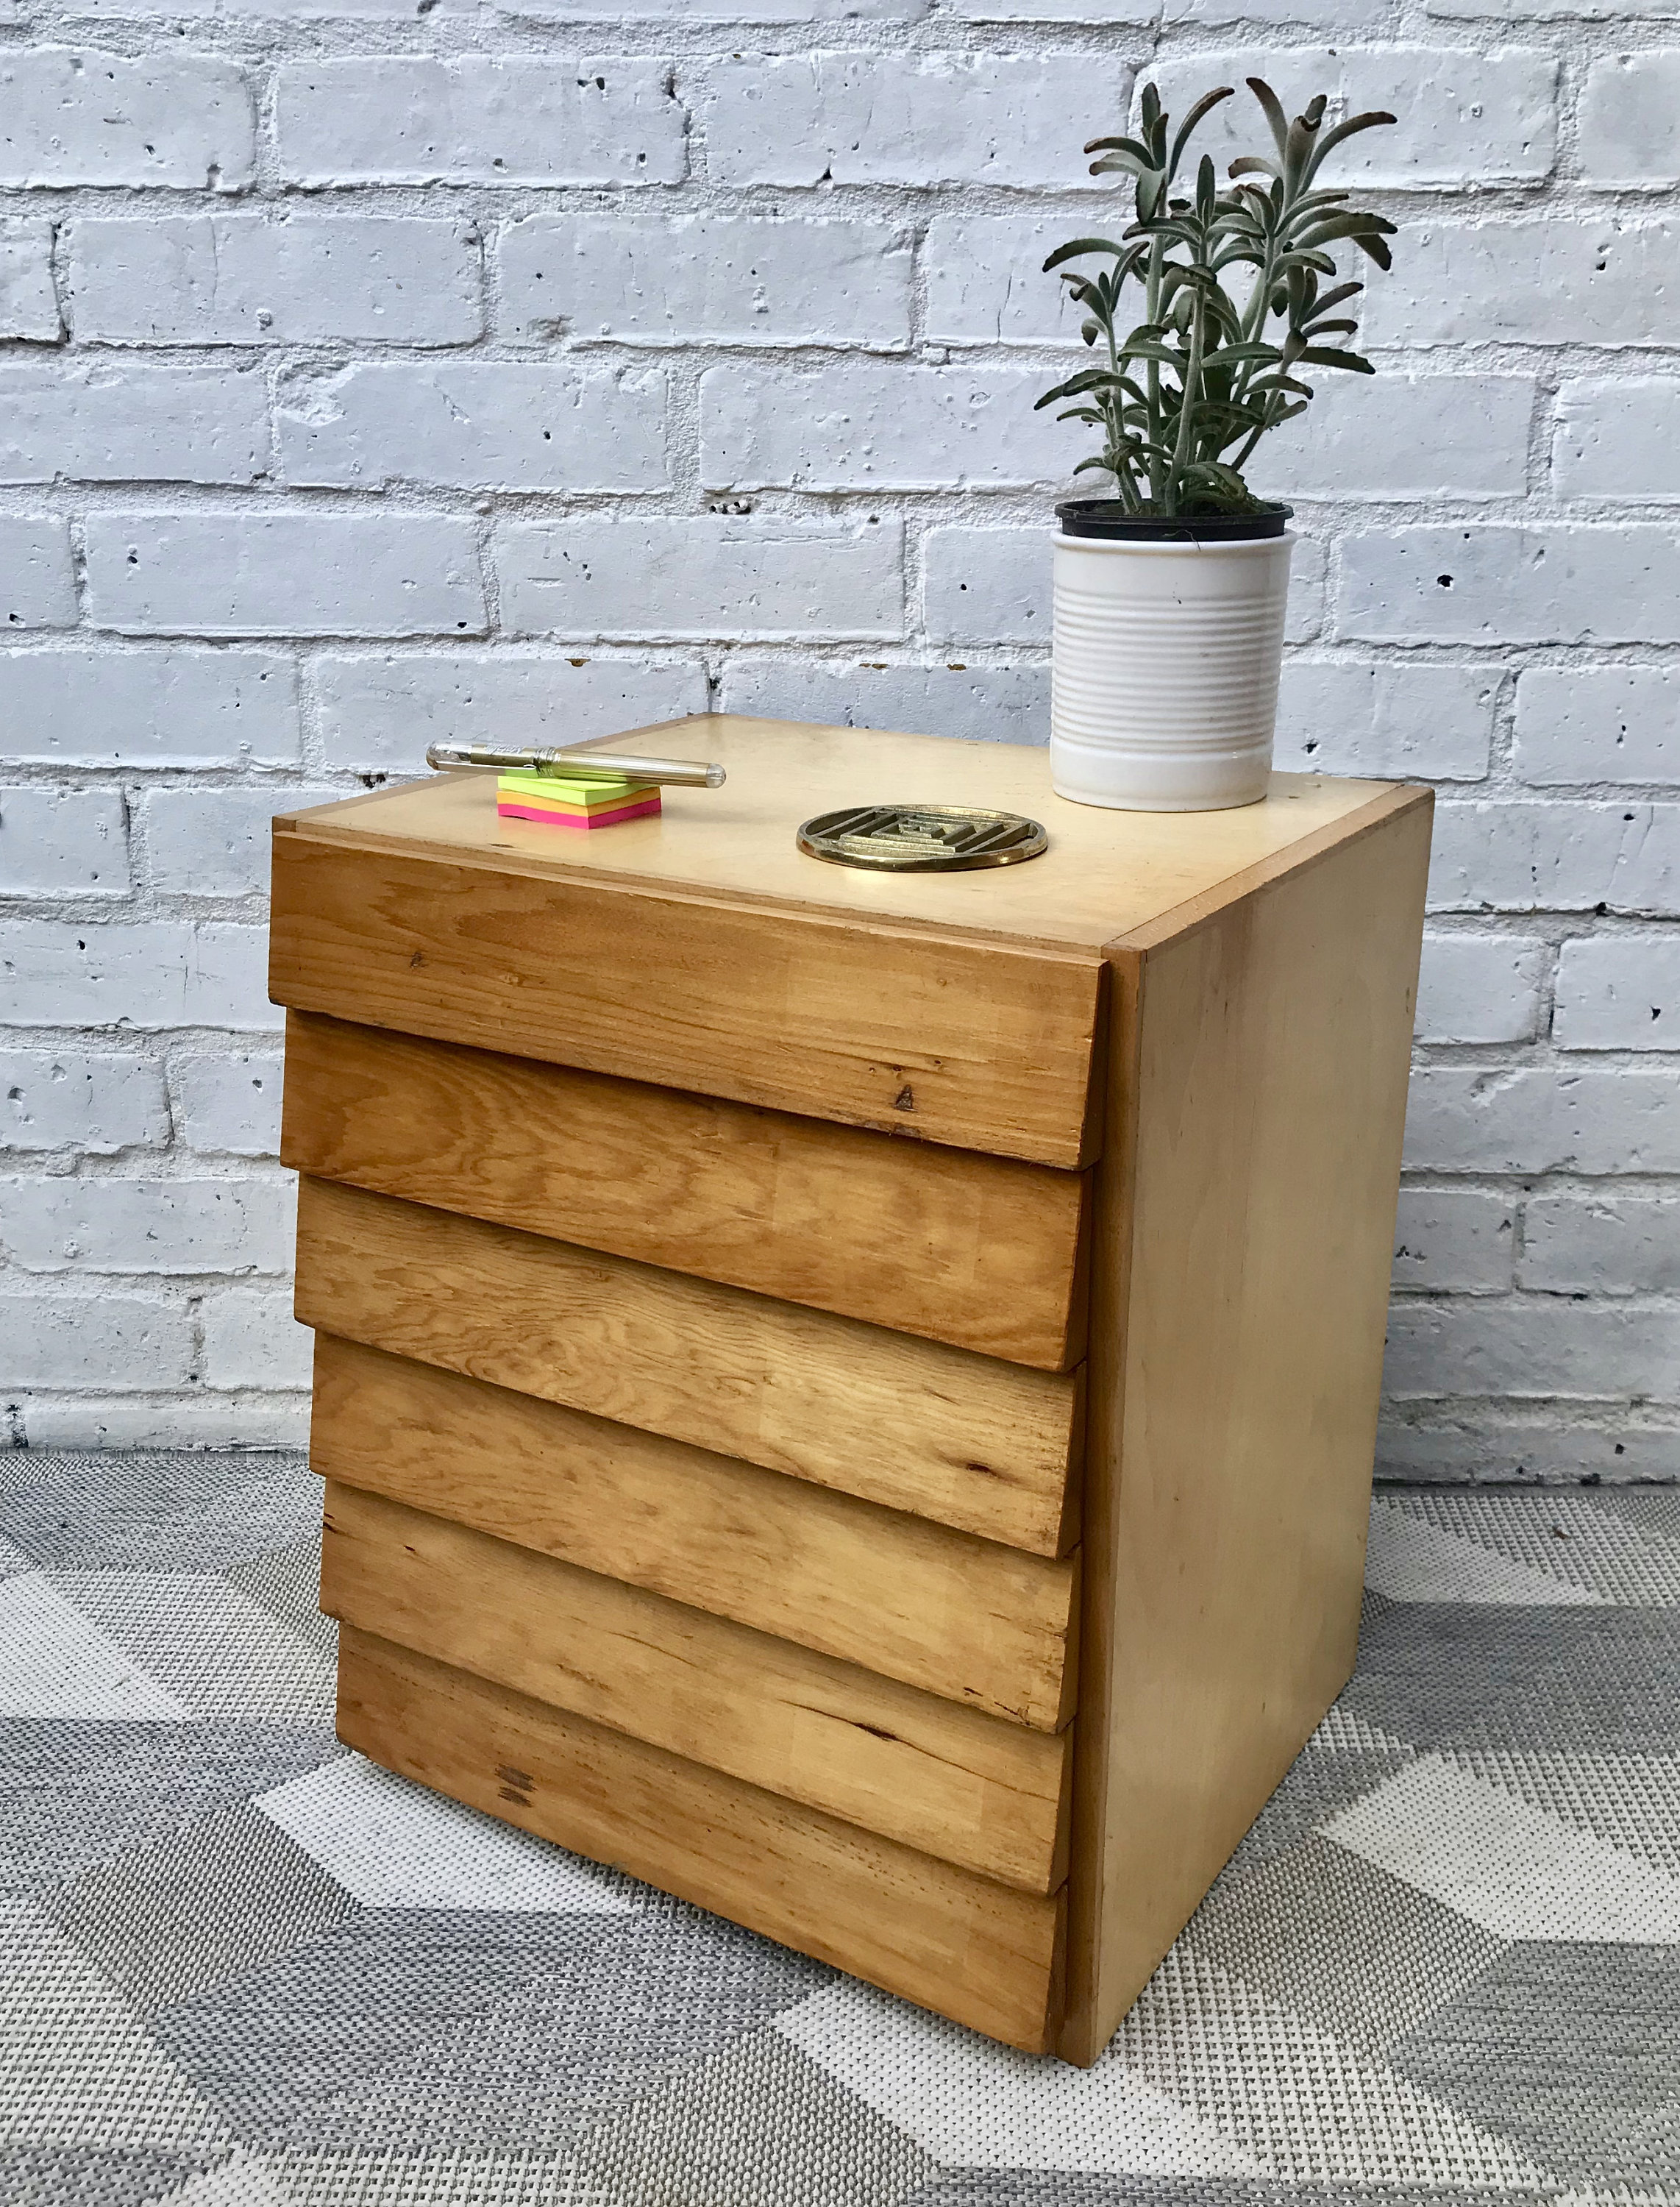 small-wooden-drawers-office-school-stationary-649